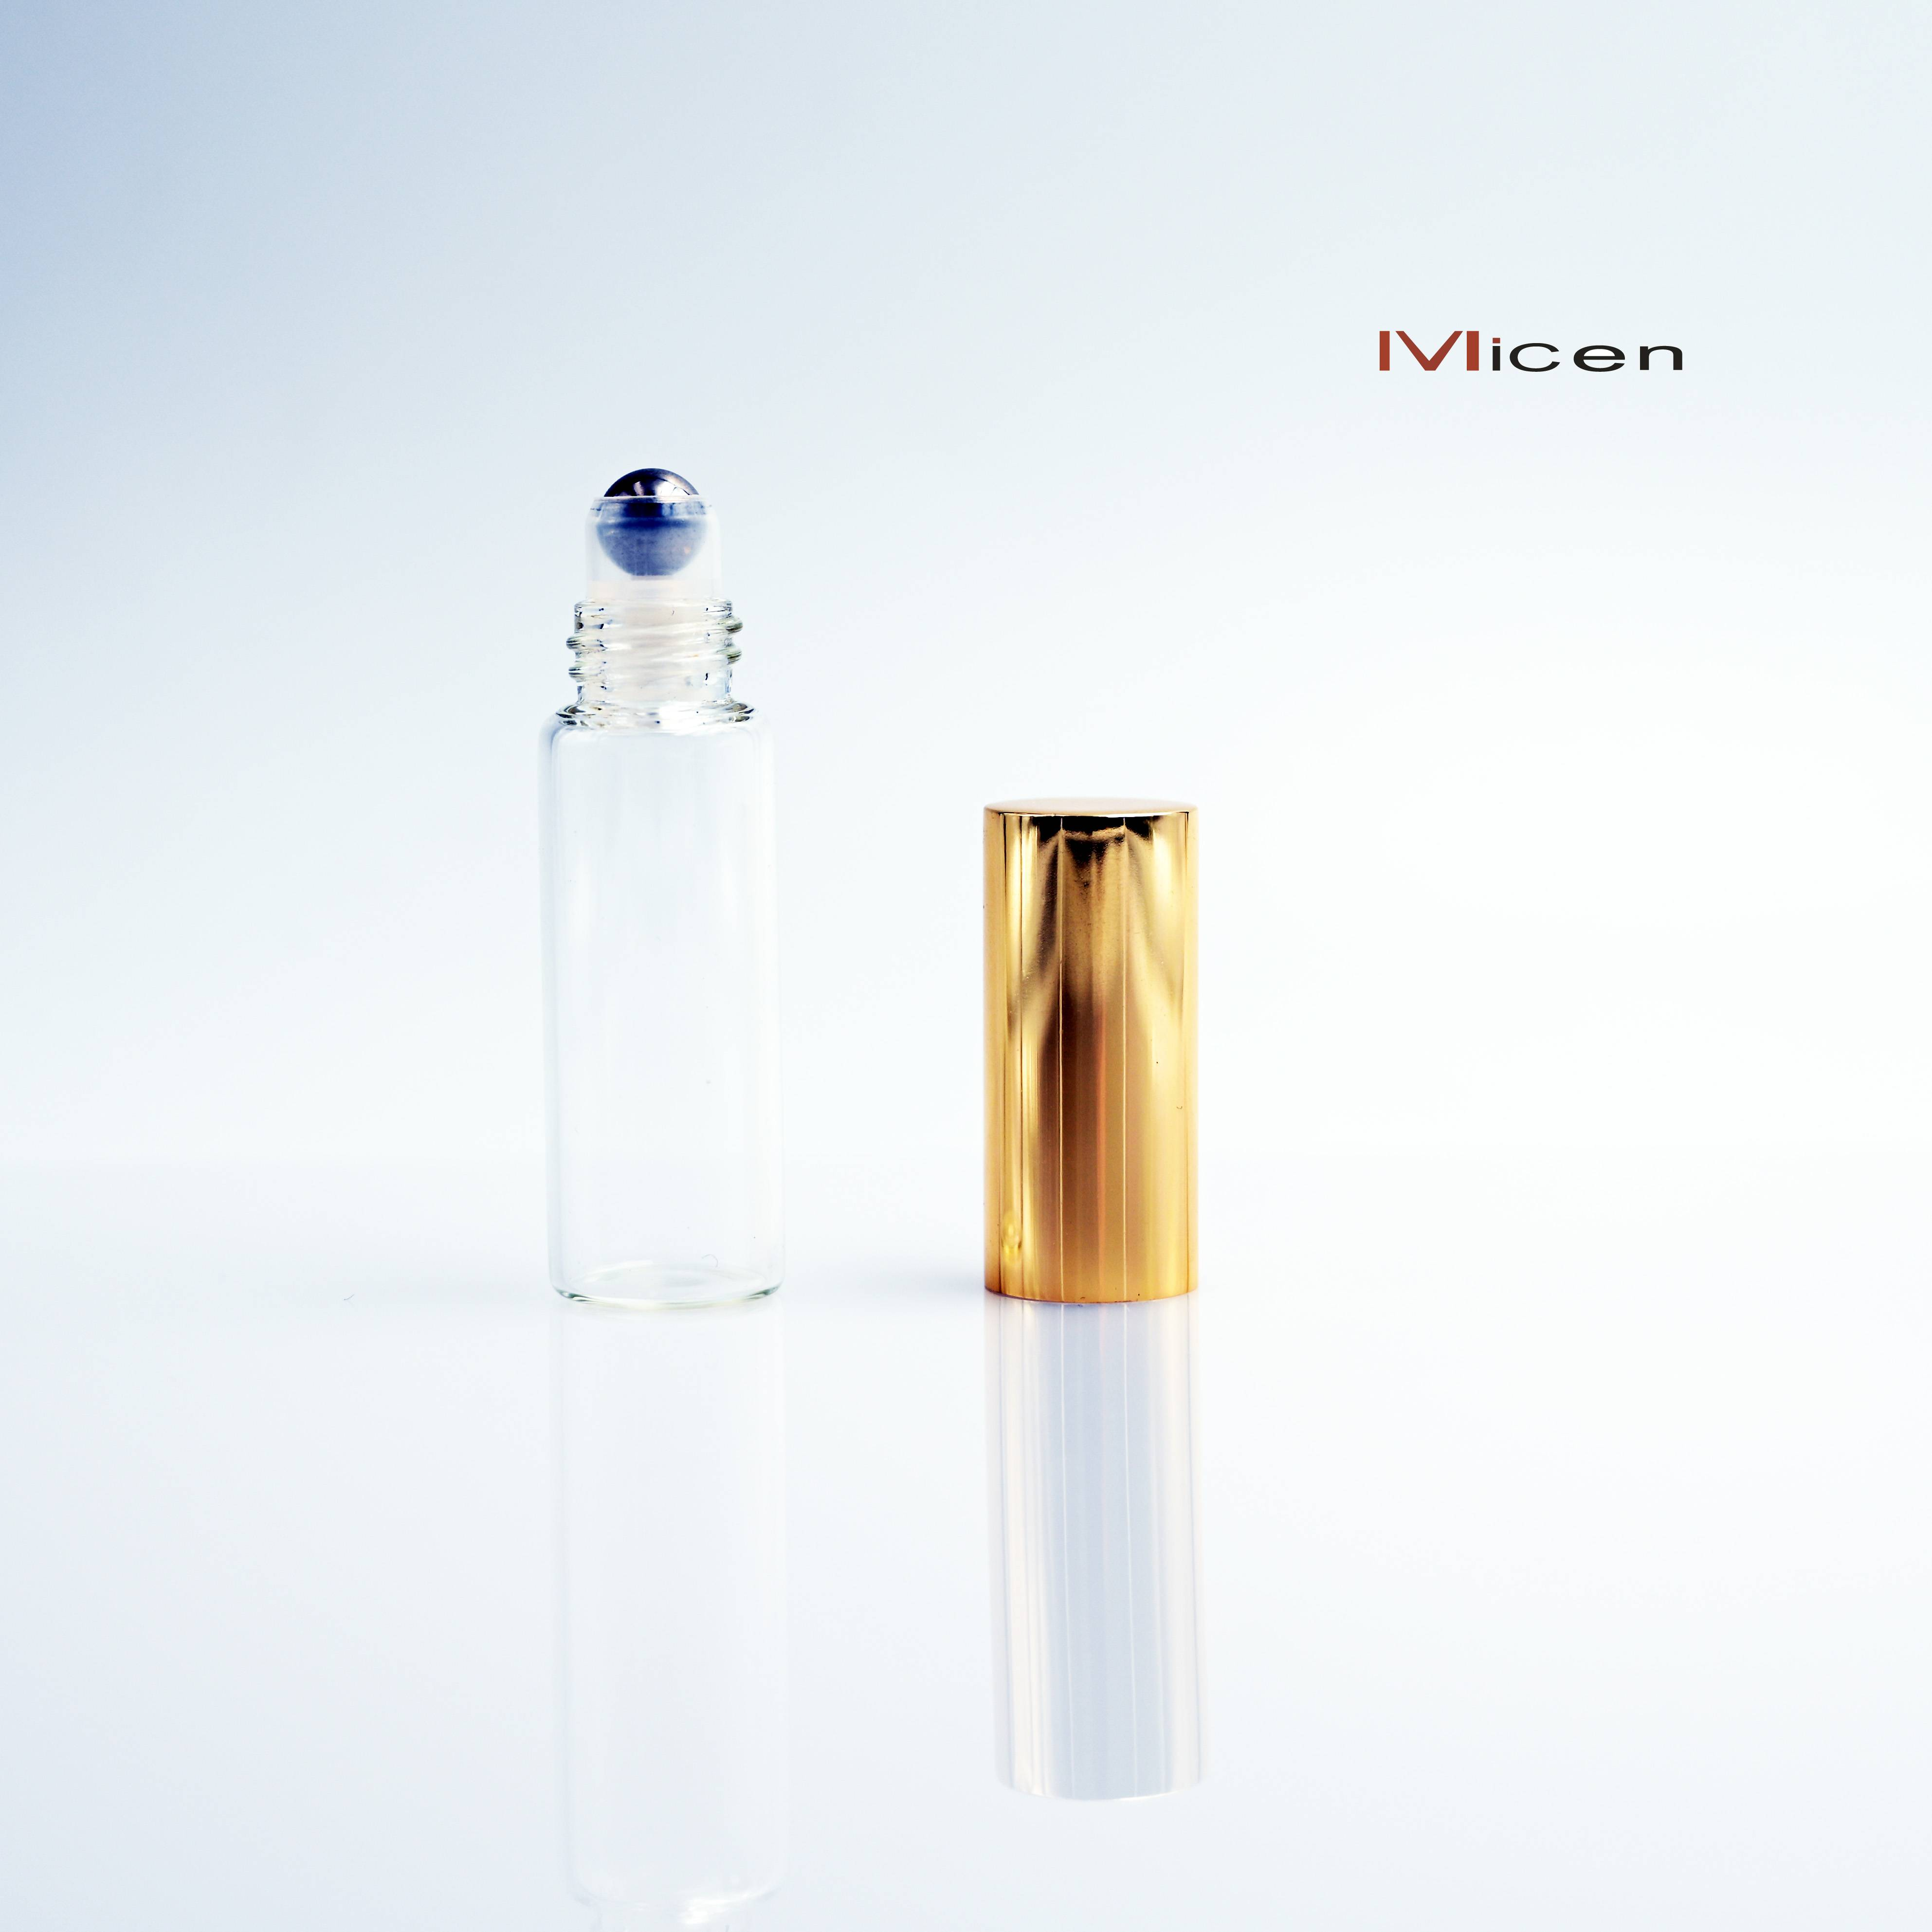 5ml Roller glass bottle Featured Image